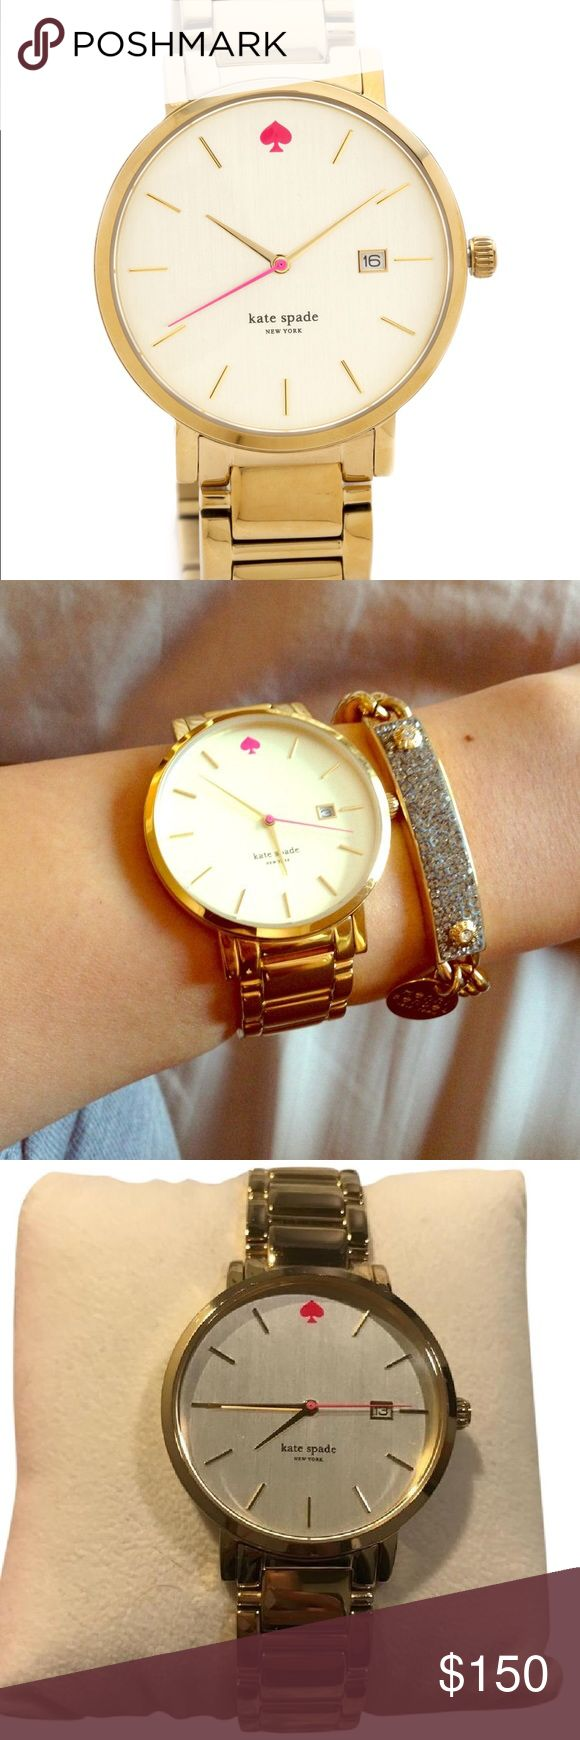 Kate Spade Gold Gramercy Watch In great condition! Comes with original box and watch links. Battery recently replaced!    Gold-plated stainless steel case and bracelet Deployment clasp closure. Three-hand analog display with quartz movement and date display window. Brushed gold dial face includes index hour markers and brand name Water resistant 3 ATM/30 meters Measurements: Case Height: 38 mm Case Width: 38 mm Case Depth: 7 mm Band Width: 3⁄4 in Band Circumference/Length: 8 3⁄4 in kate